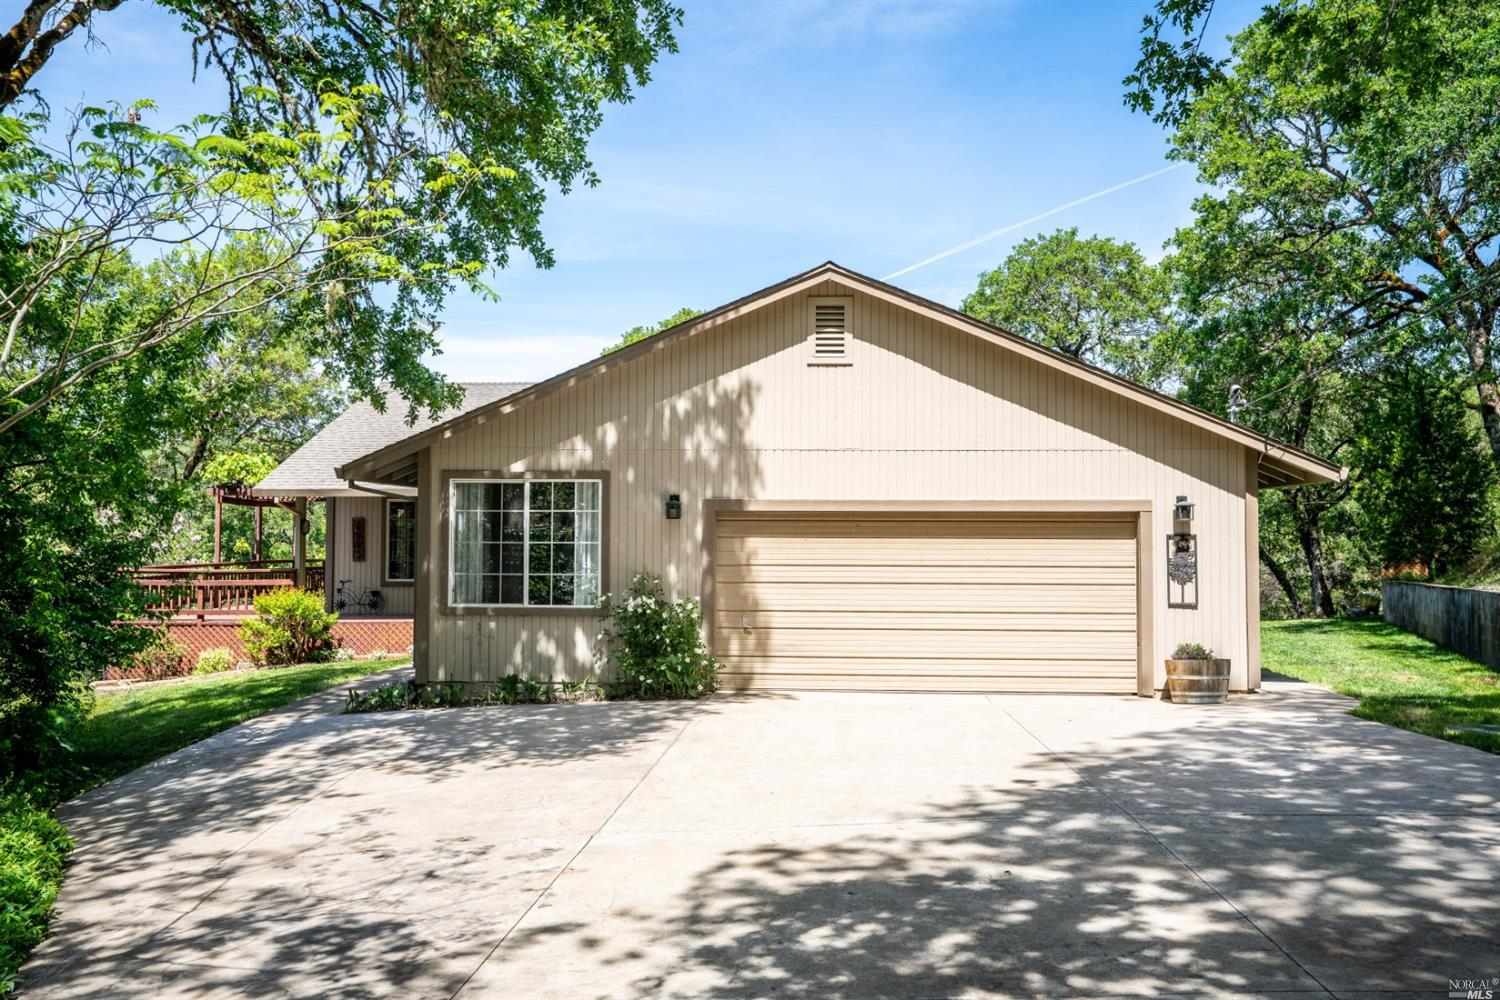 1010 Dusty Road, Redwood Valley, CA 95470